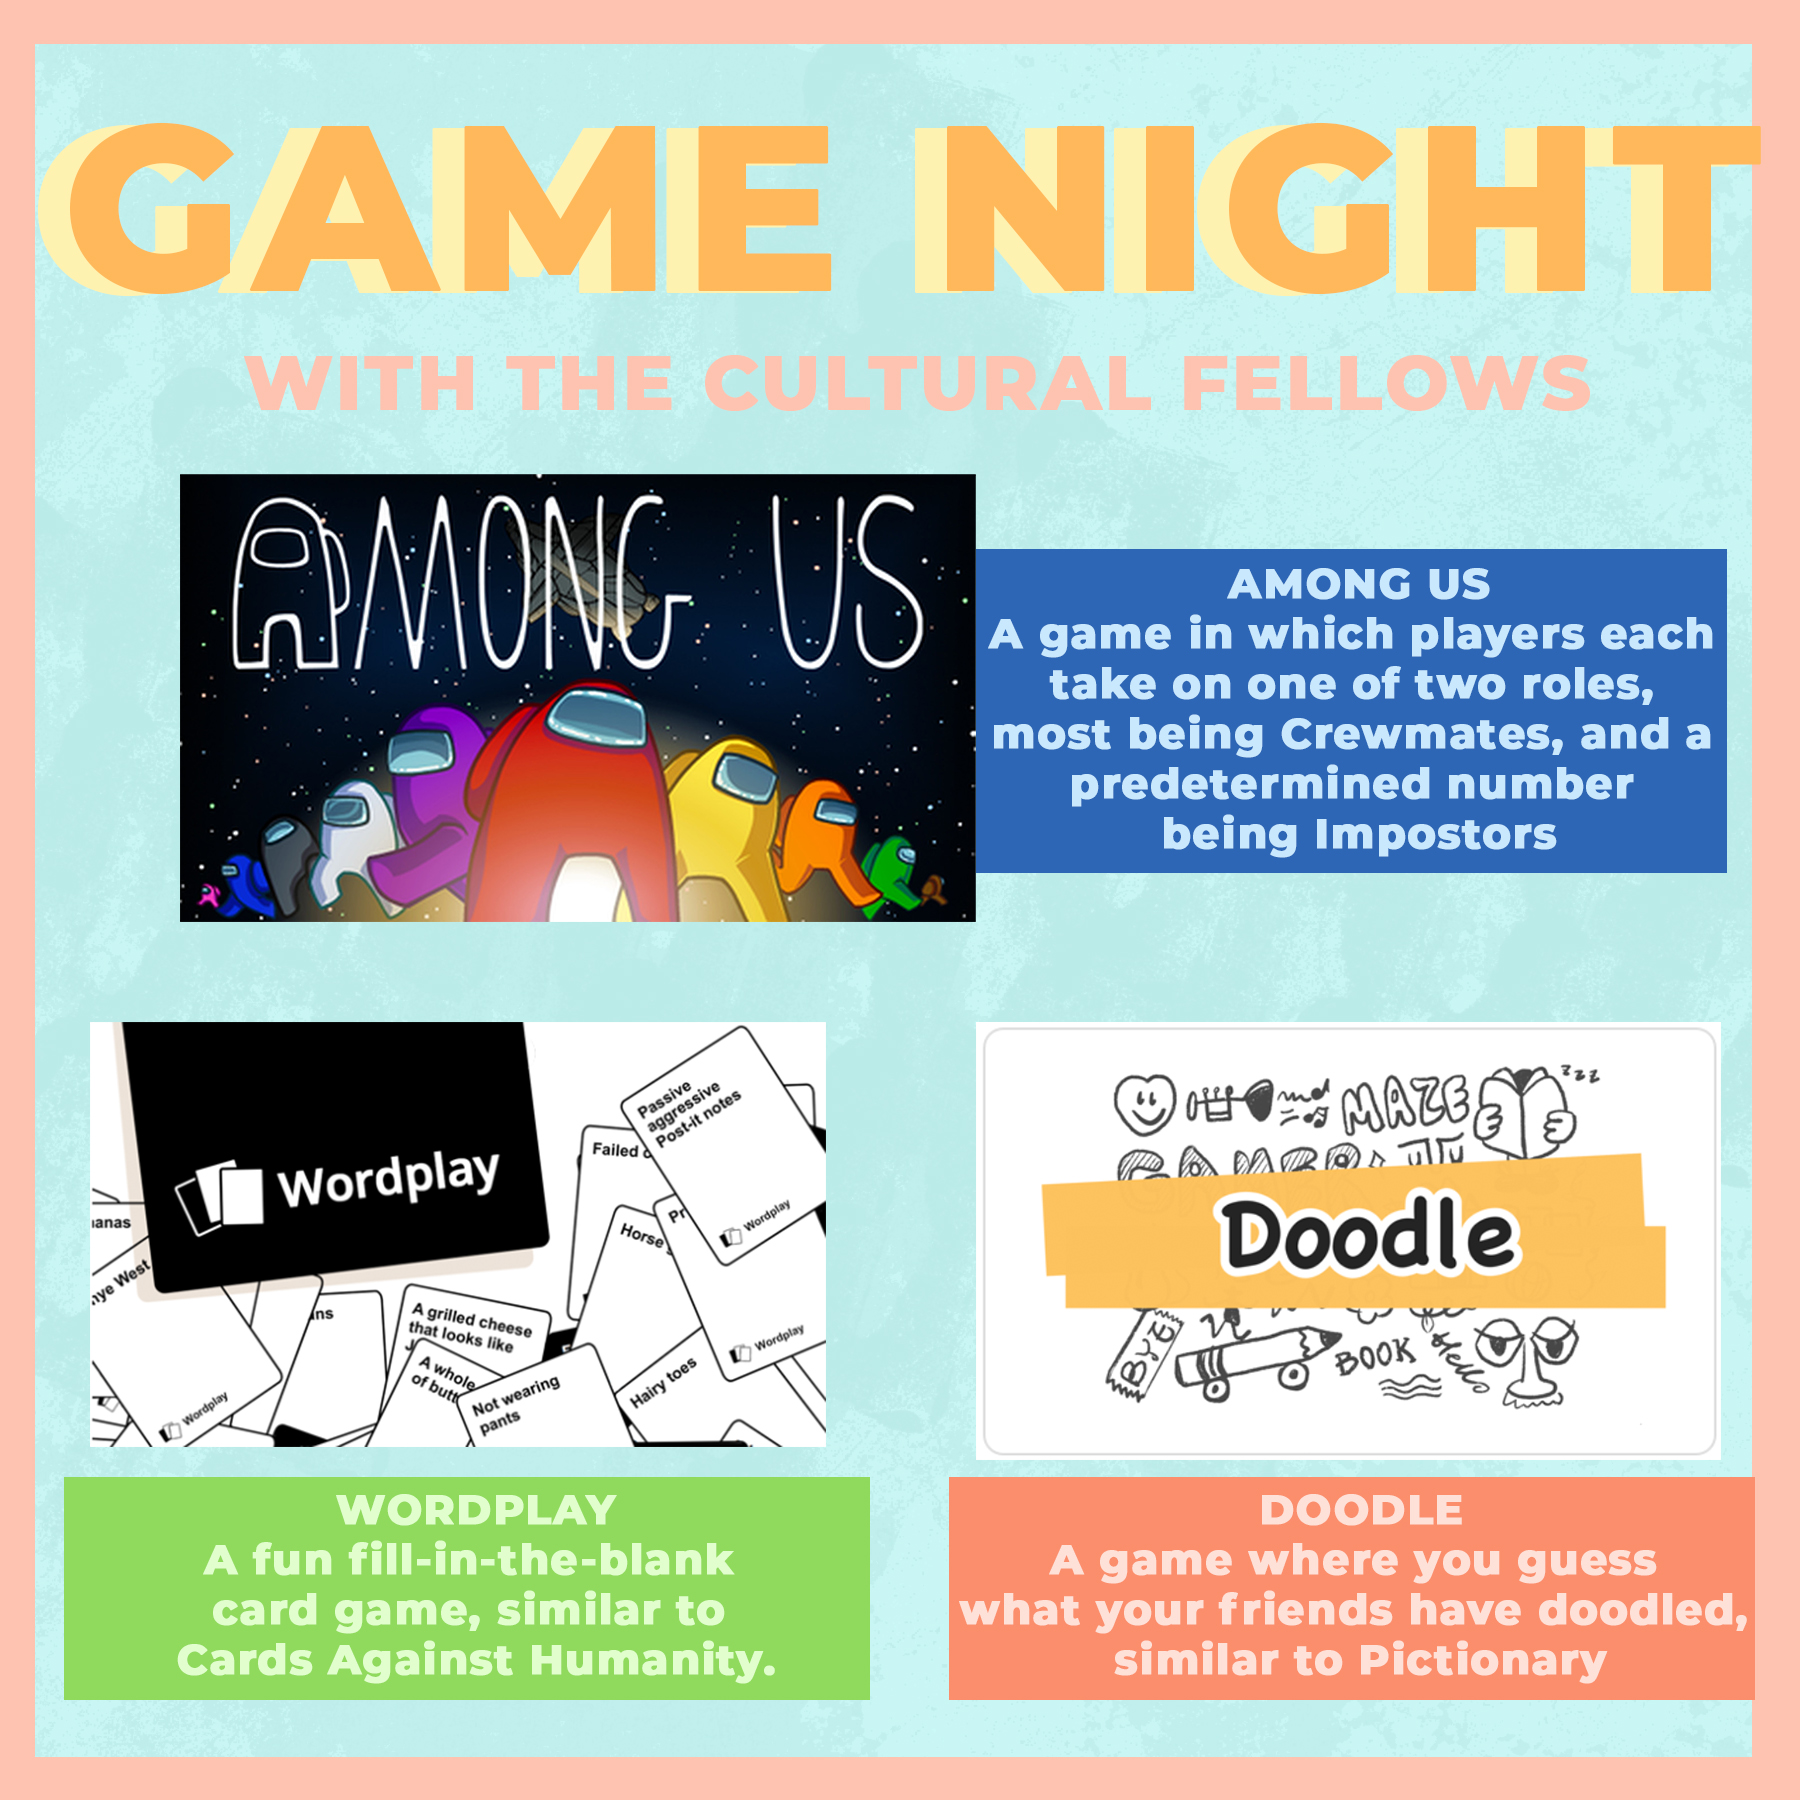 cultural fellow game night